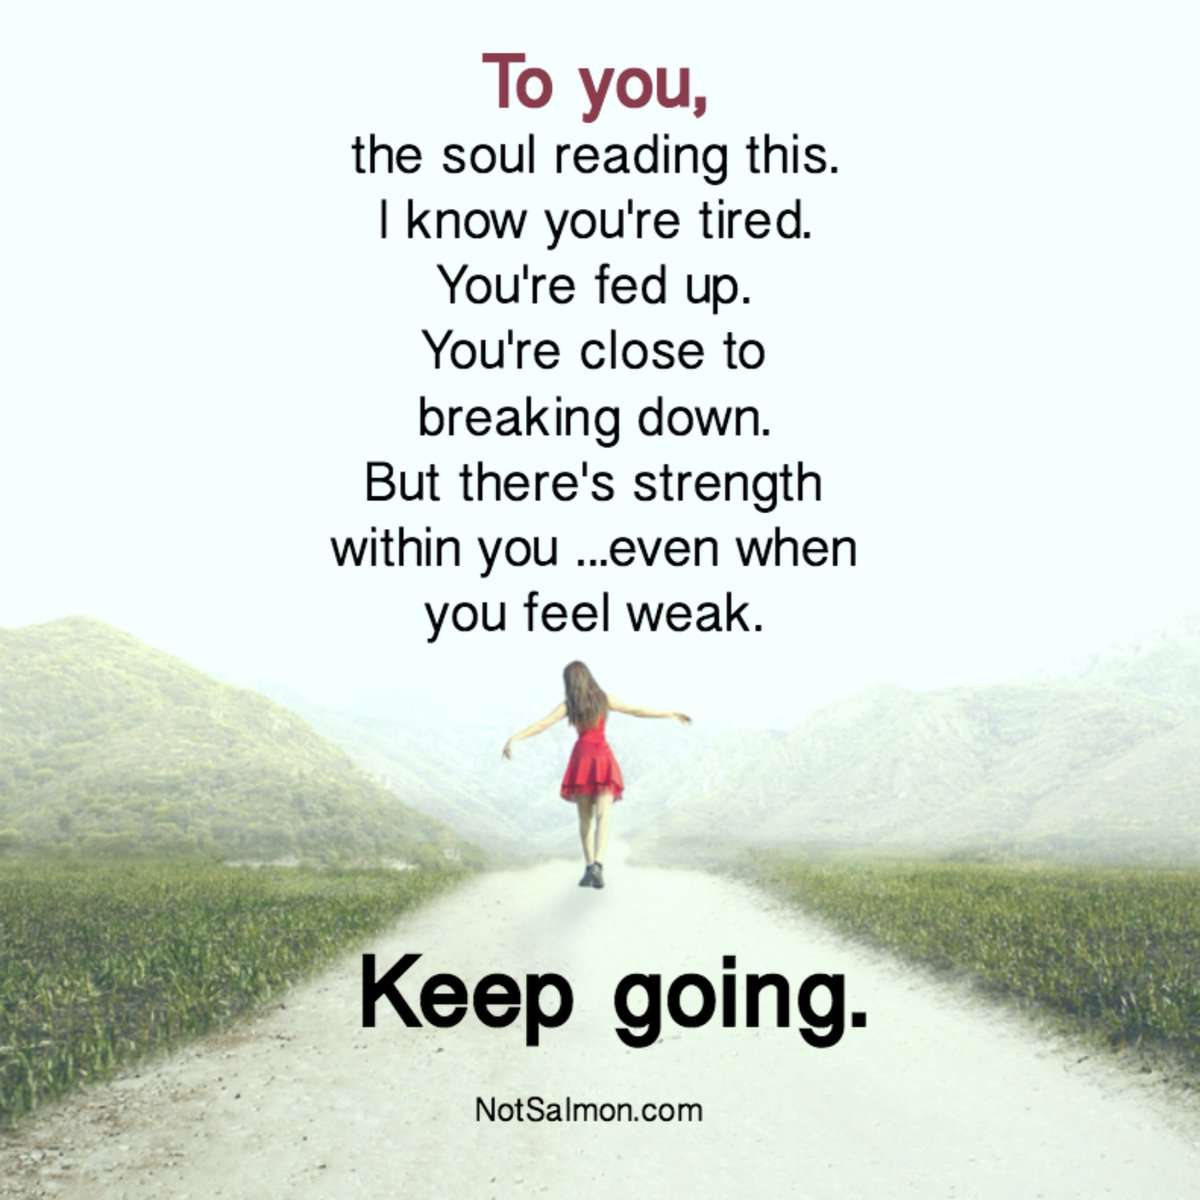 Motivational Quotes To Keep Going In Life: Keep Going, Keep Going, Keep Going... #motivation